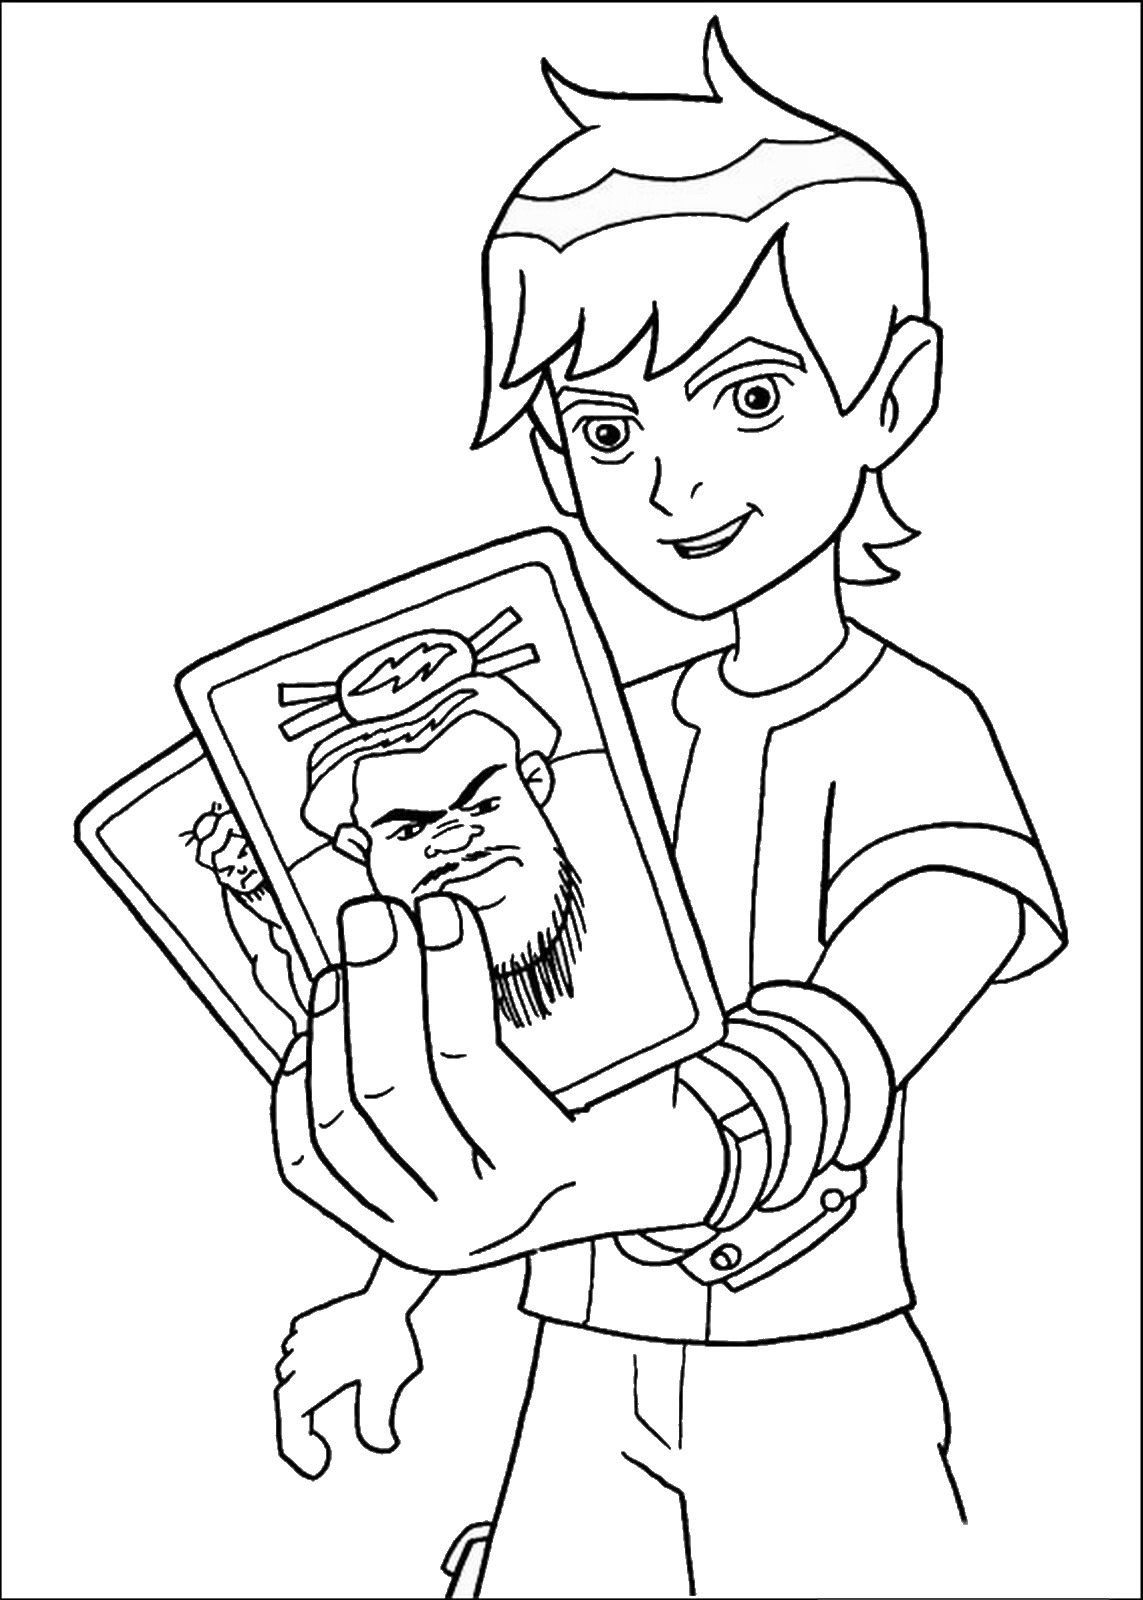 ben 10 coloring page ben 10 coloring pages realistic coloring pages coloring page 10 ben